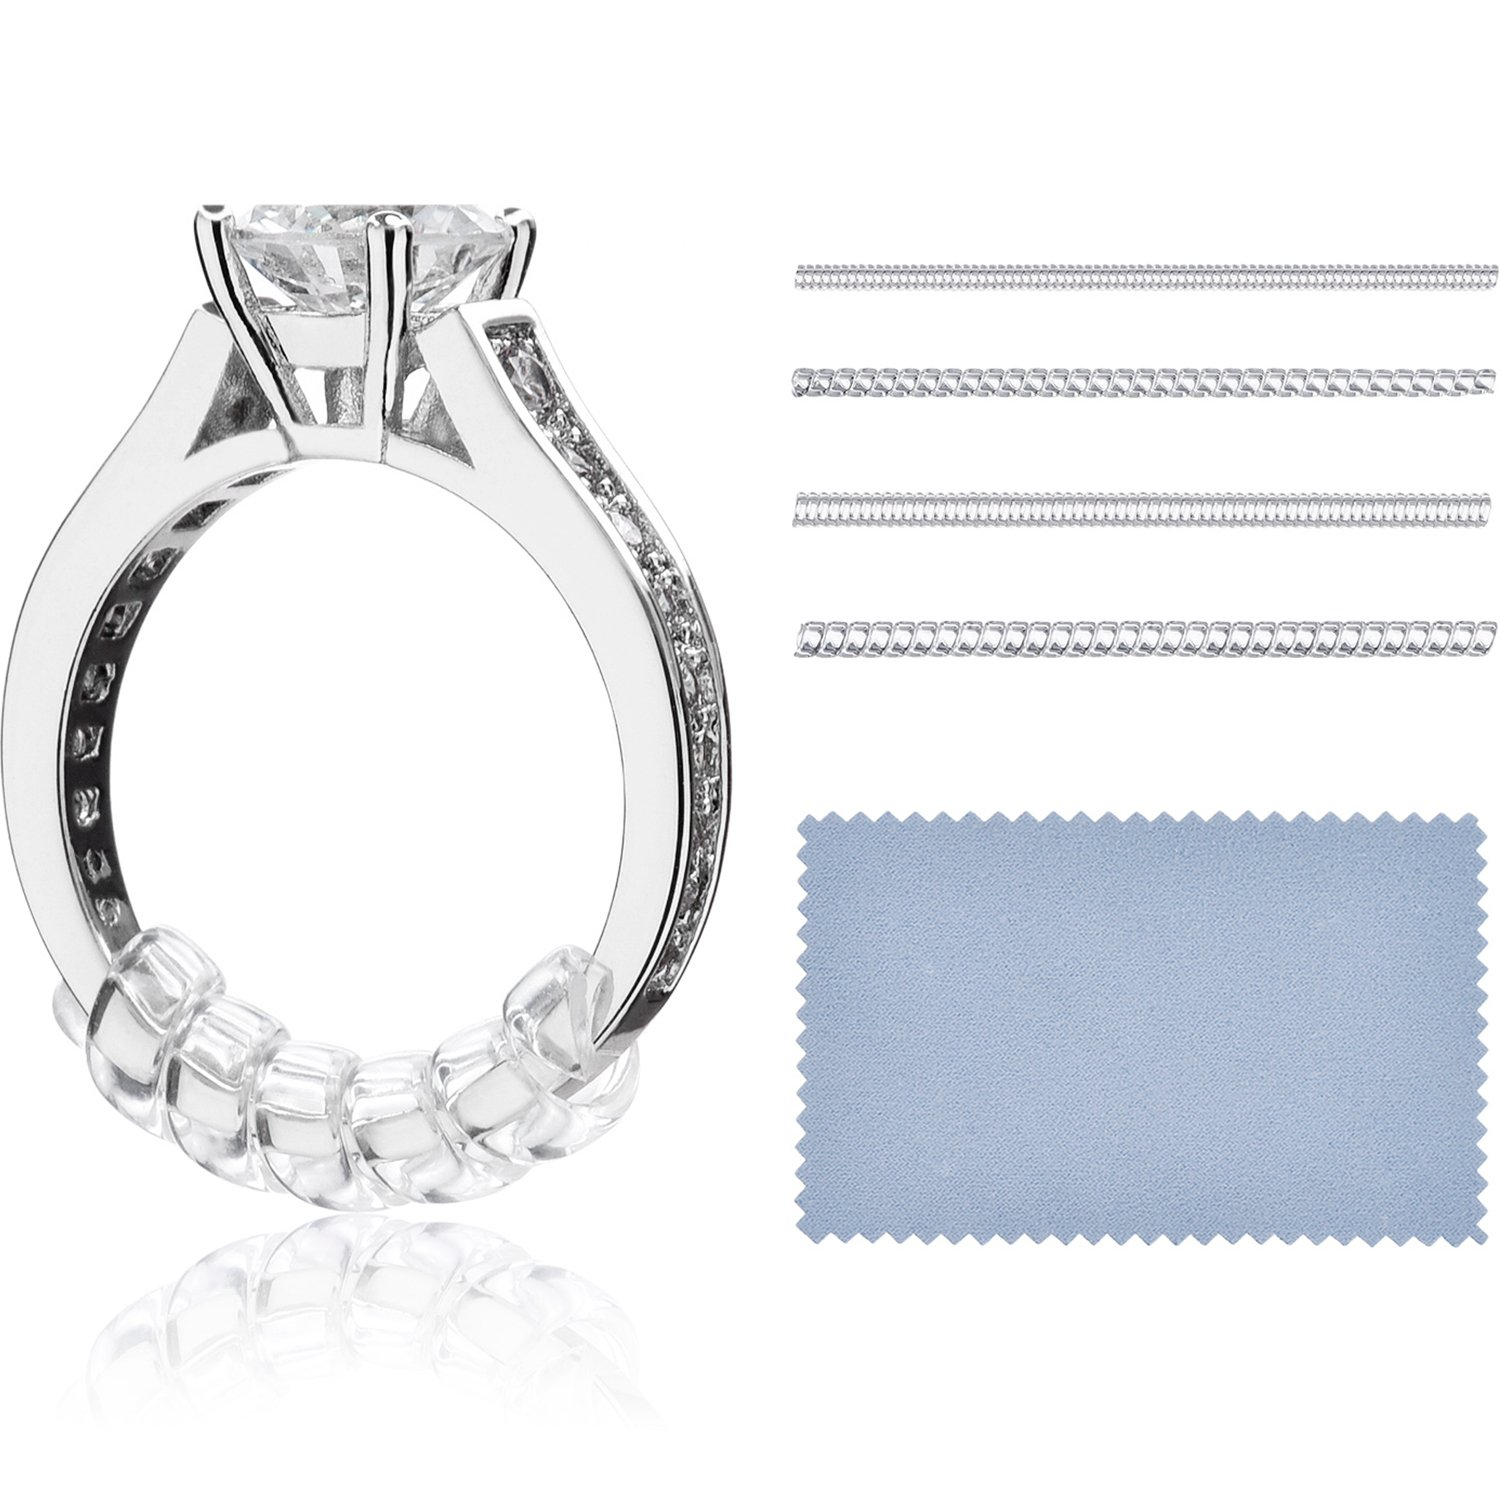 16 Pieces Ring Sizer Adjuster for Loose Rings, 4 Sizes Ring Guard with Jewelry Polishing Cloth Pangda